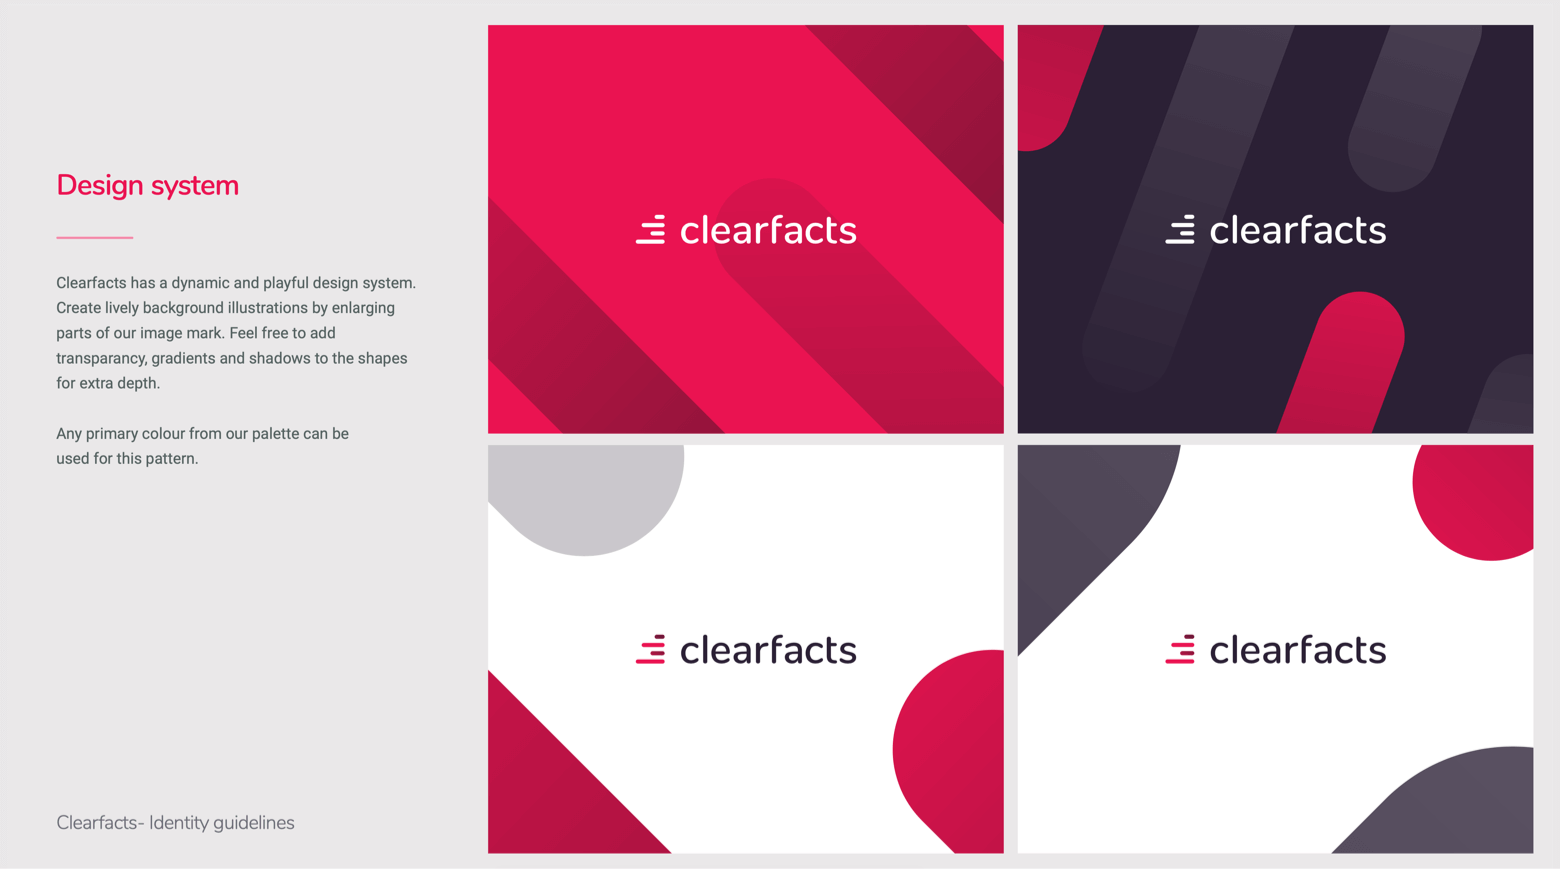 Clearfacts design system